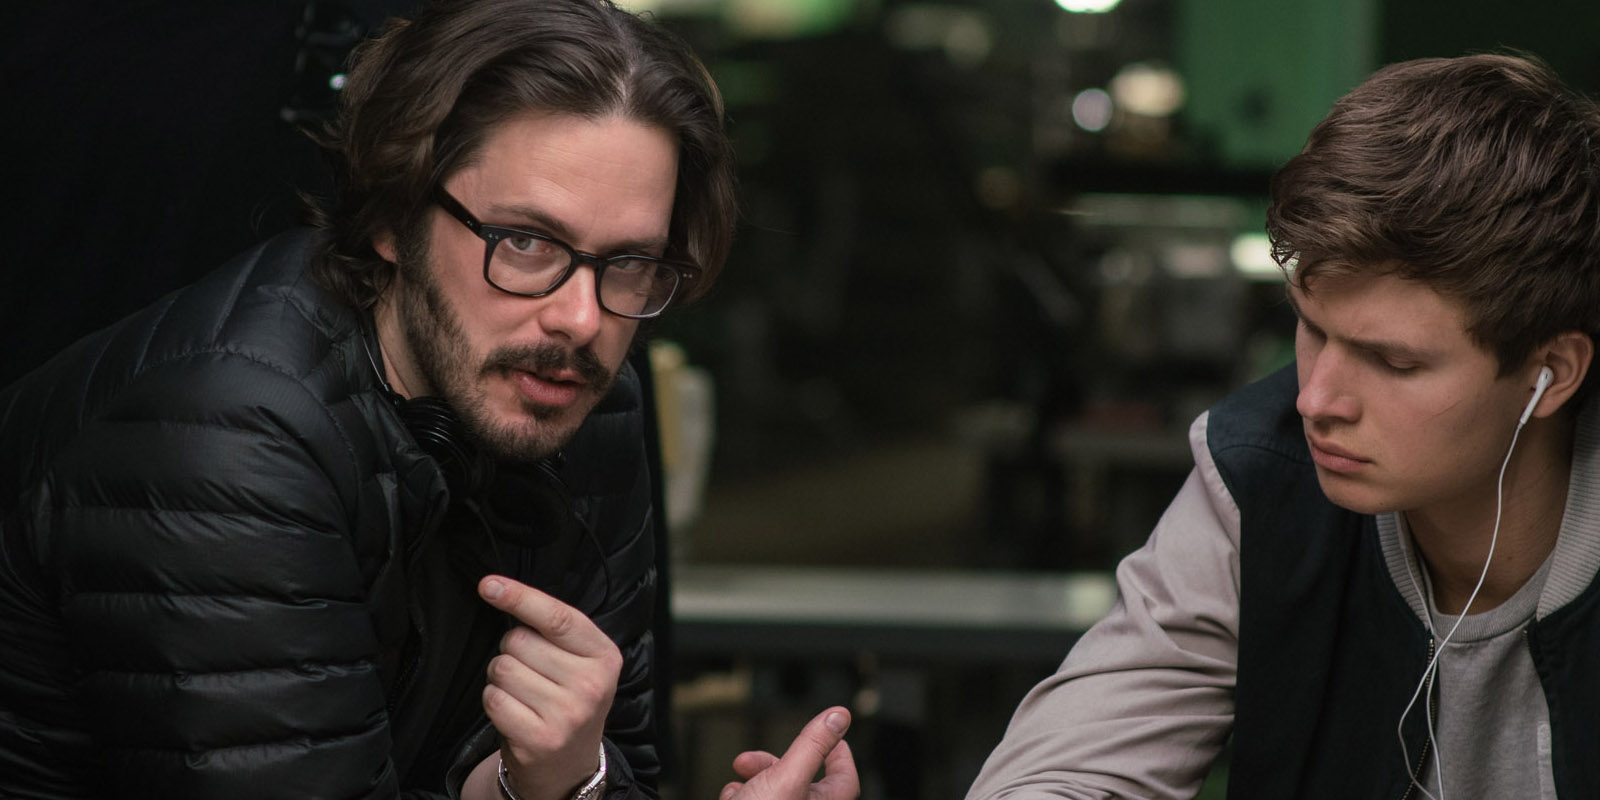 edgar-wright-directing-baby-driver.jpg